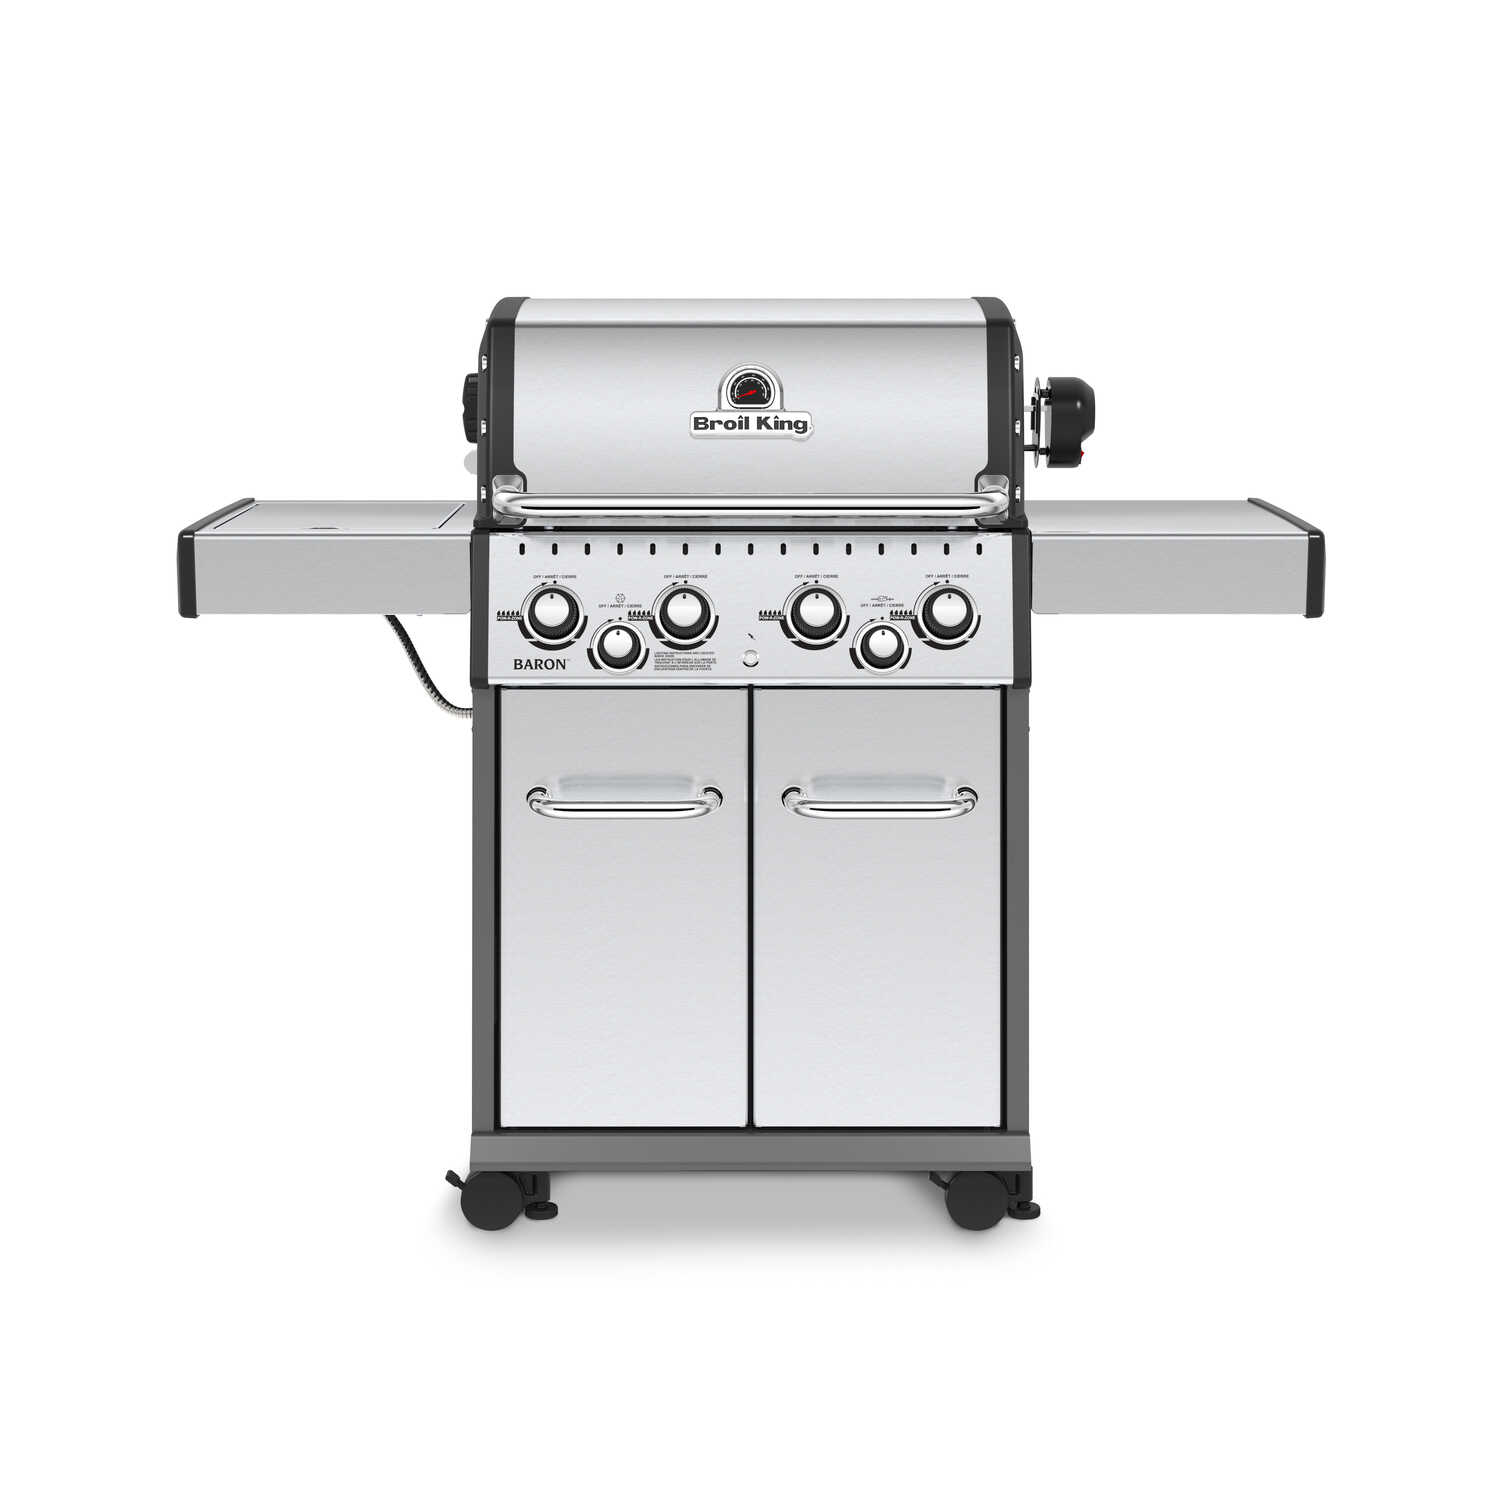 Broil King  Baron S490  4 burners Propane  Grill  Stainless Steel  40000 BTU